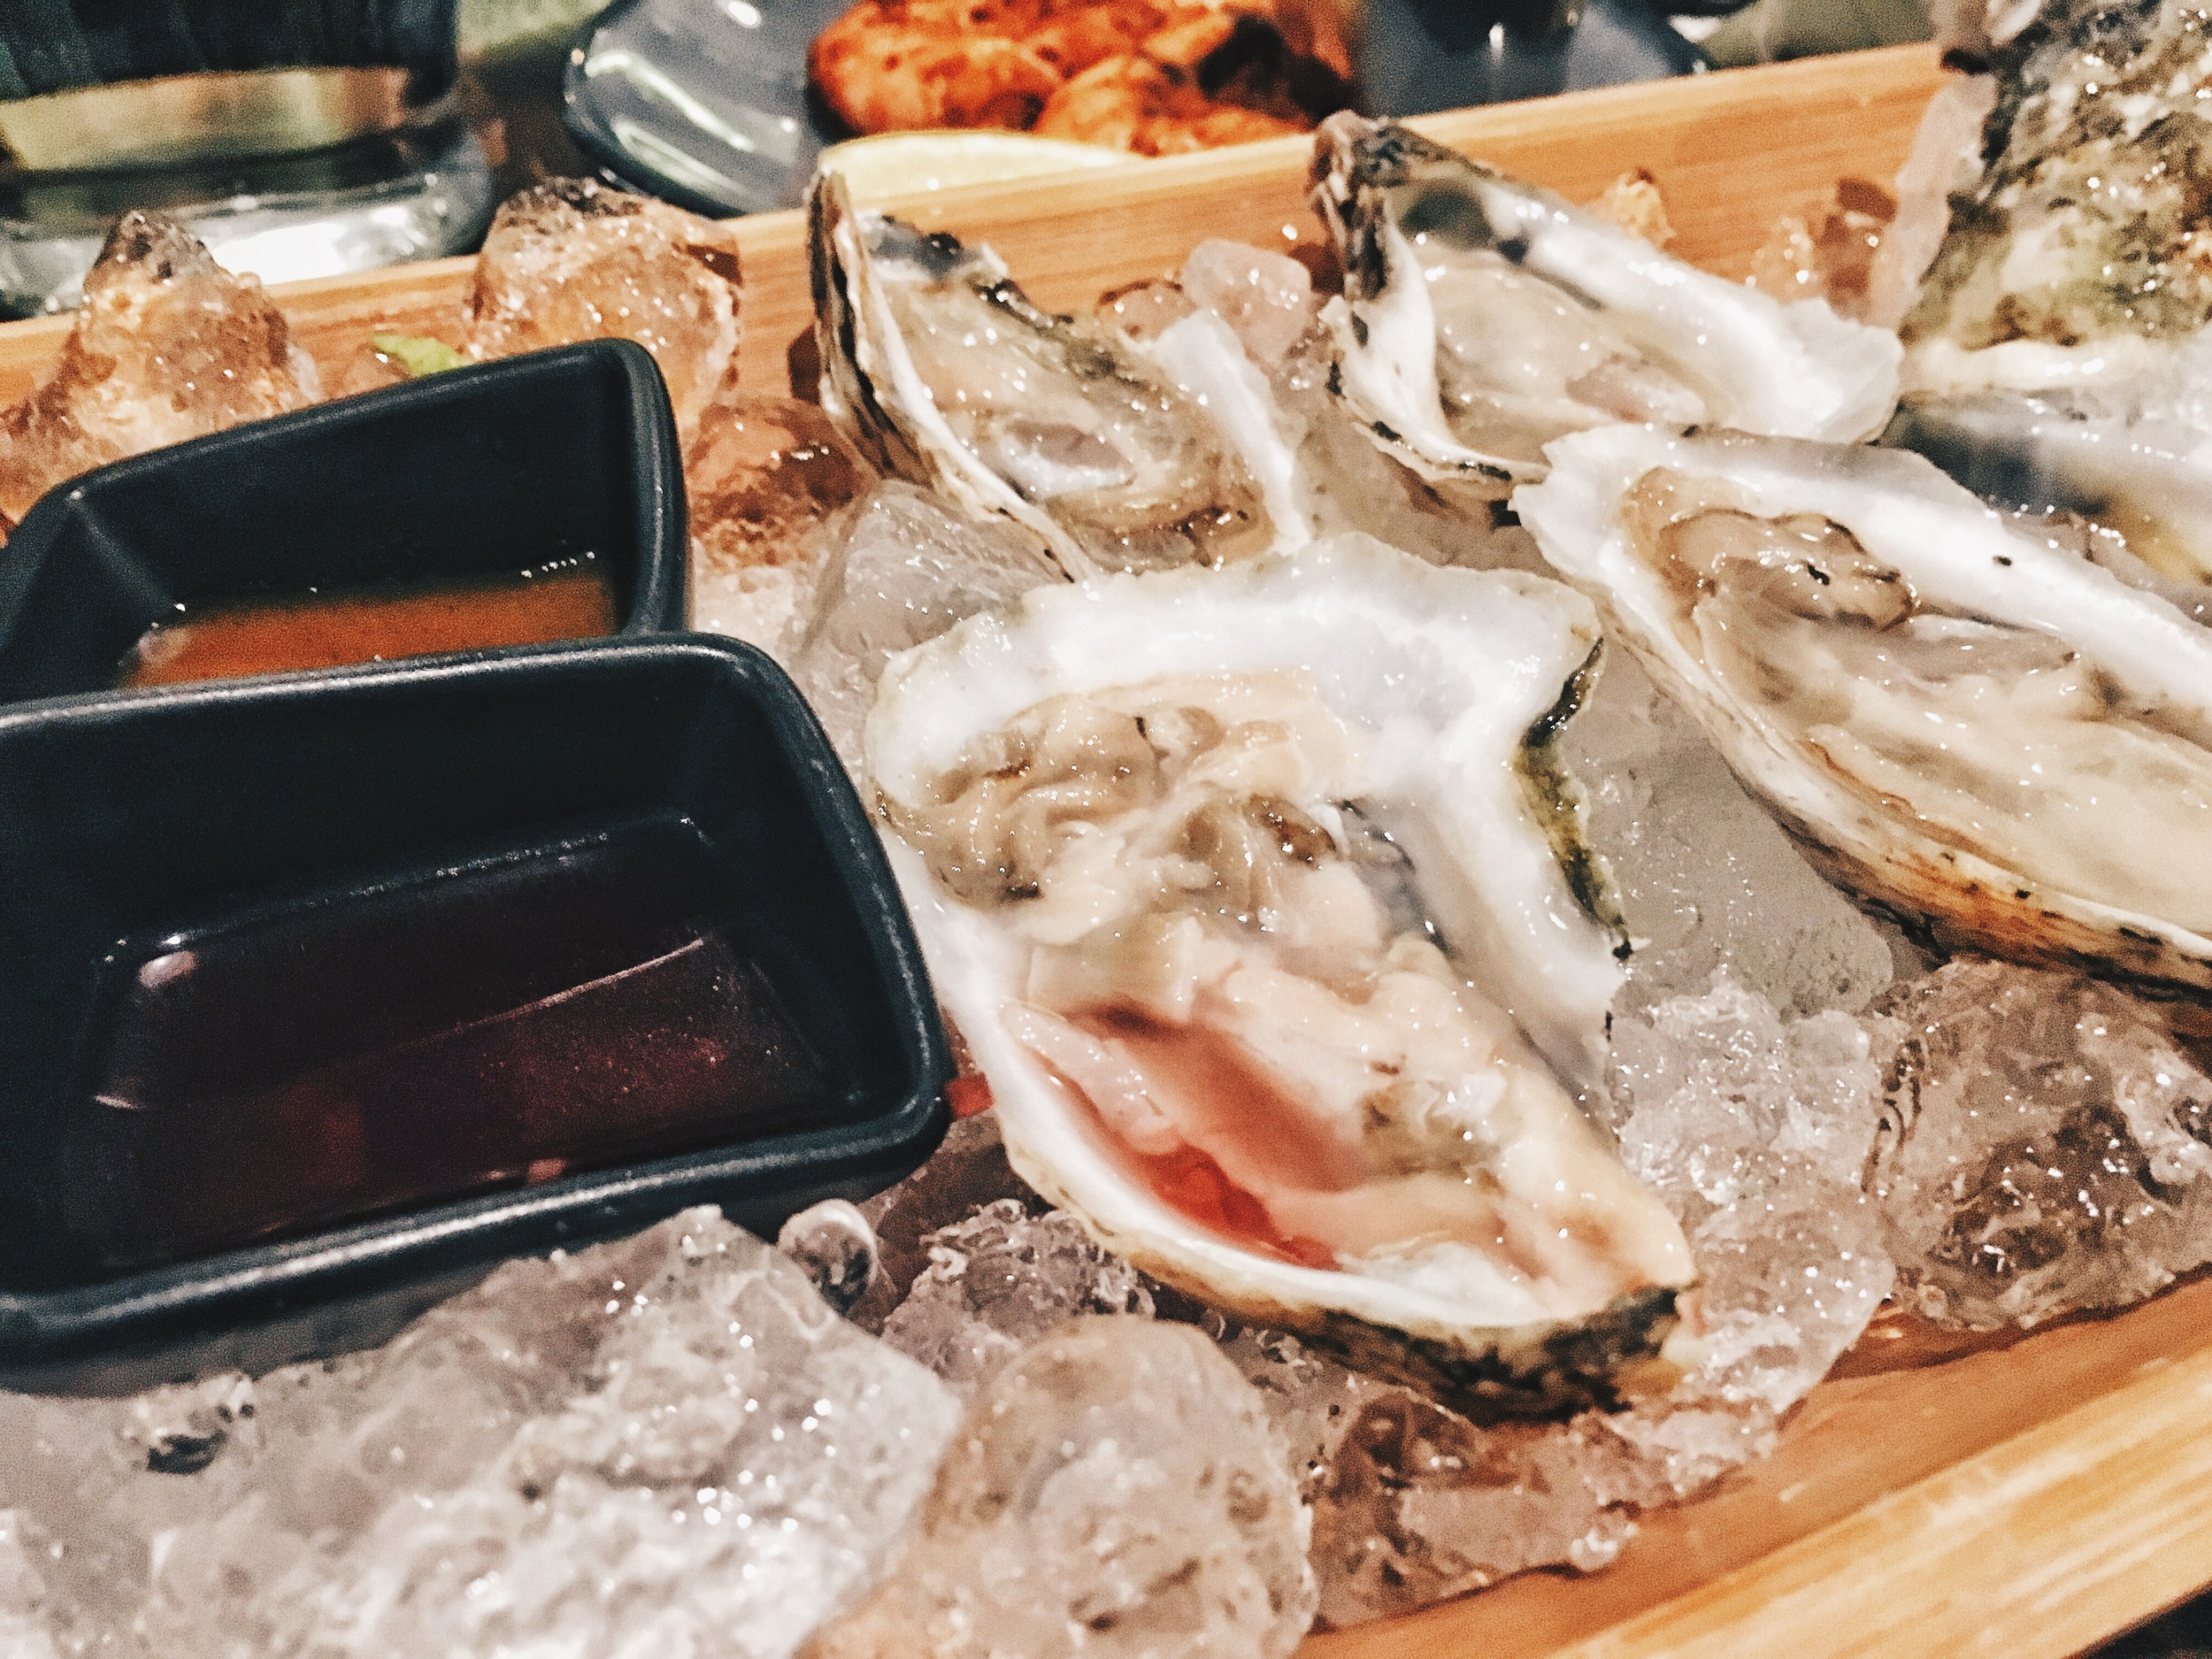 Oysters with hot sauce, mignonette, lemon and house remoulade ($1 each for happy hour)